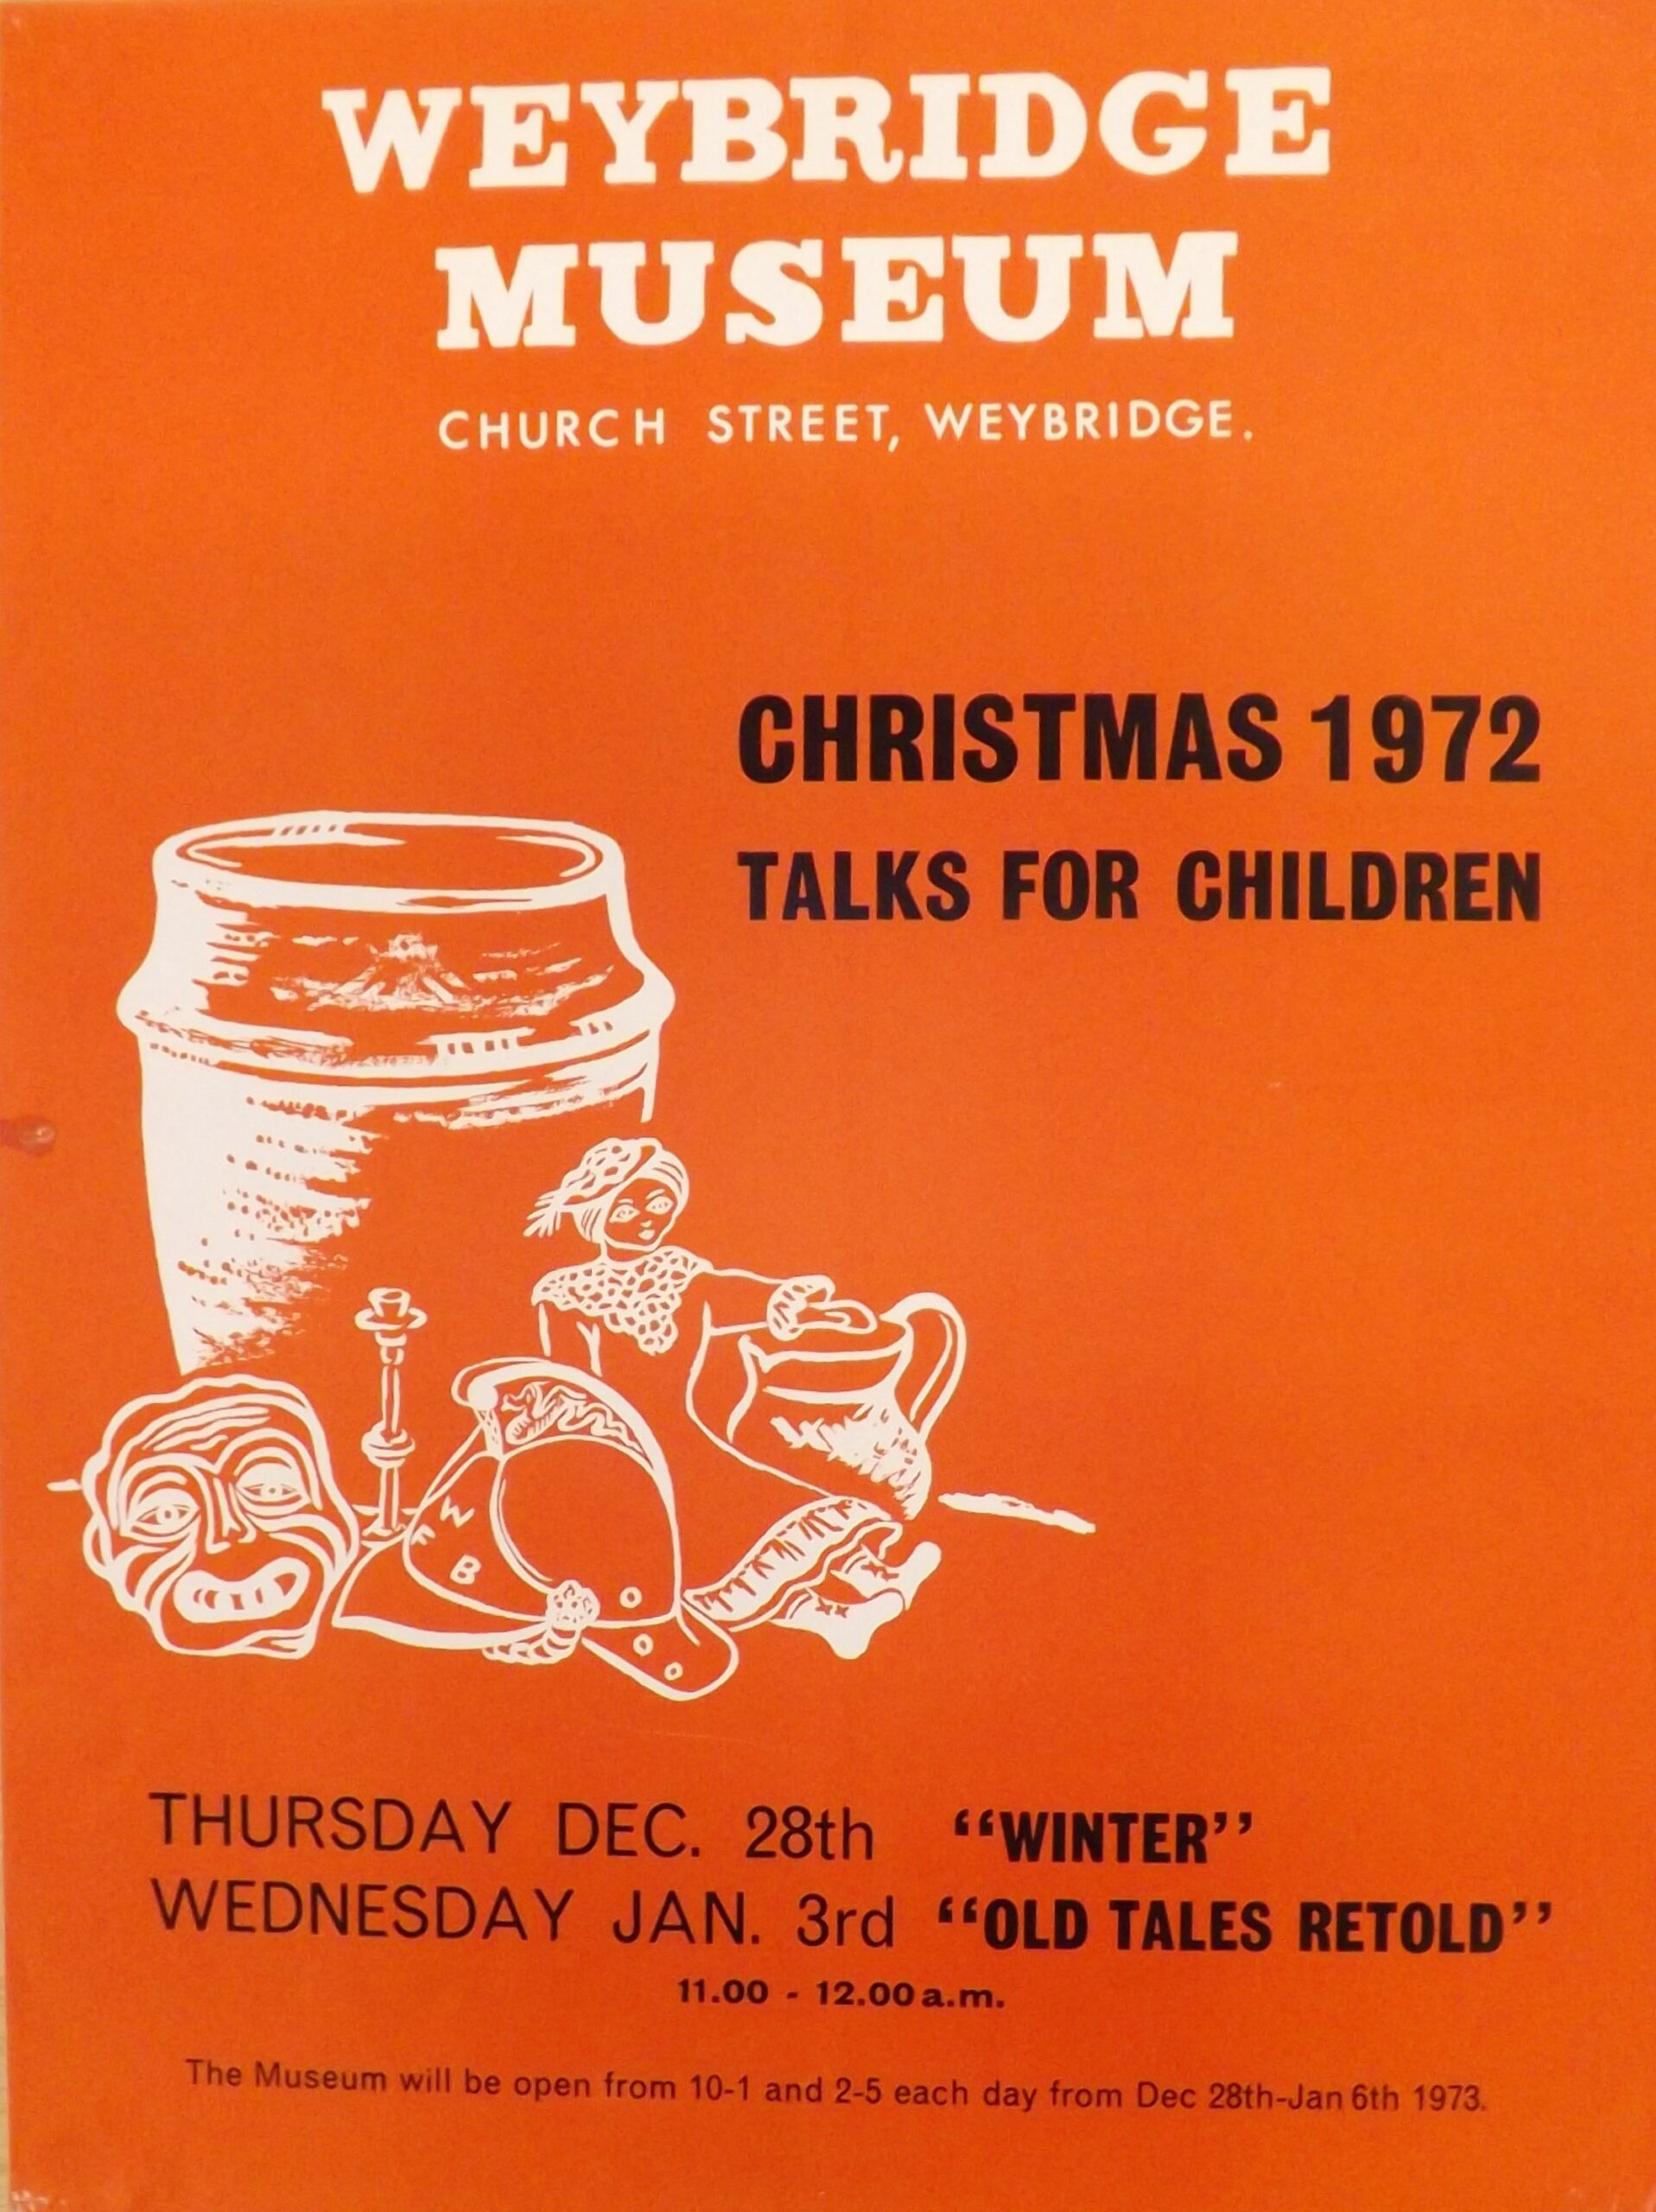 Museum poster from Weybridge Museum (now Elmbridge Museum) advertising 'Christmas Talks for Children' in 1972 that were put on in their former gallery space above Weybridge Library, Church Street.